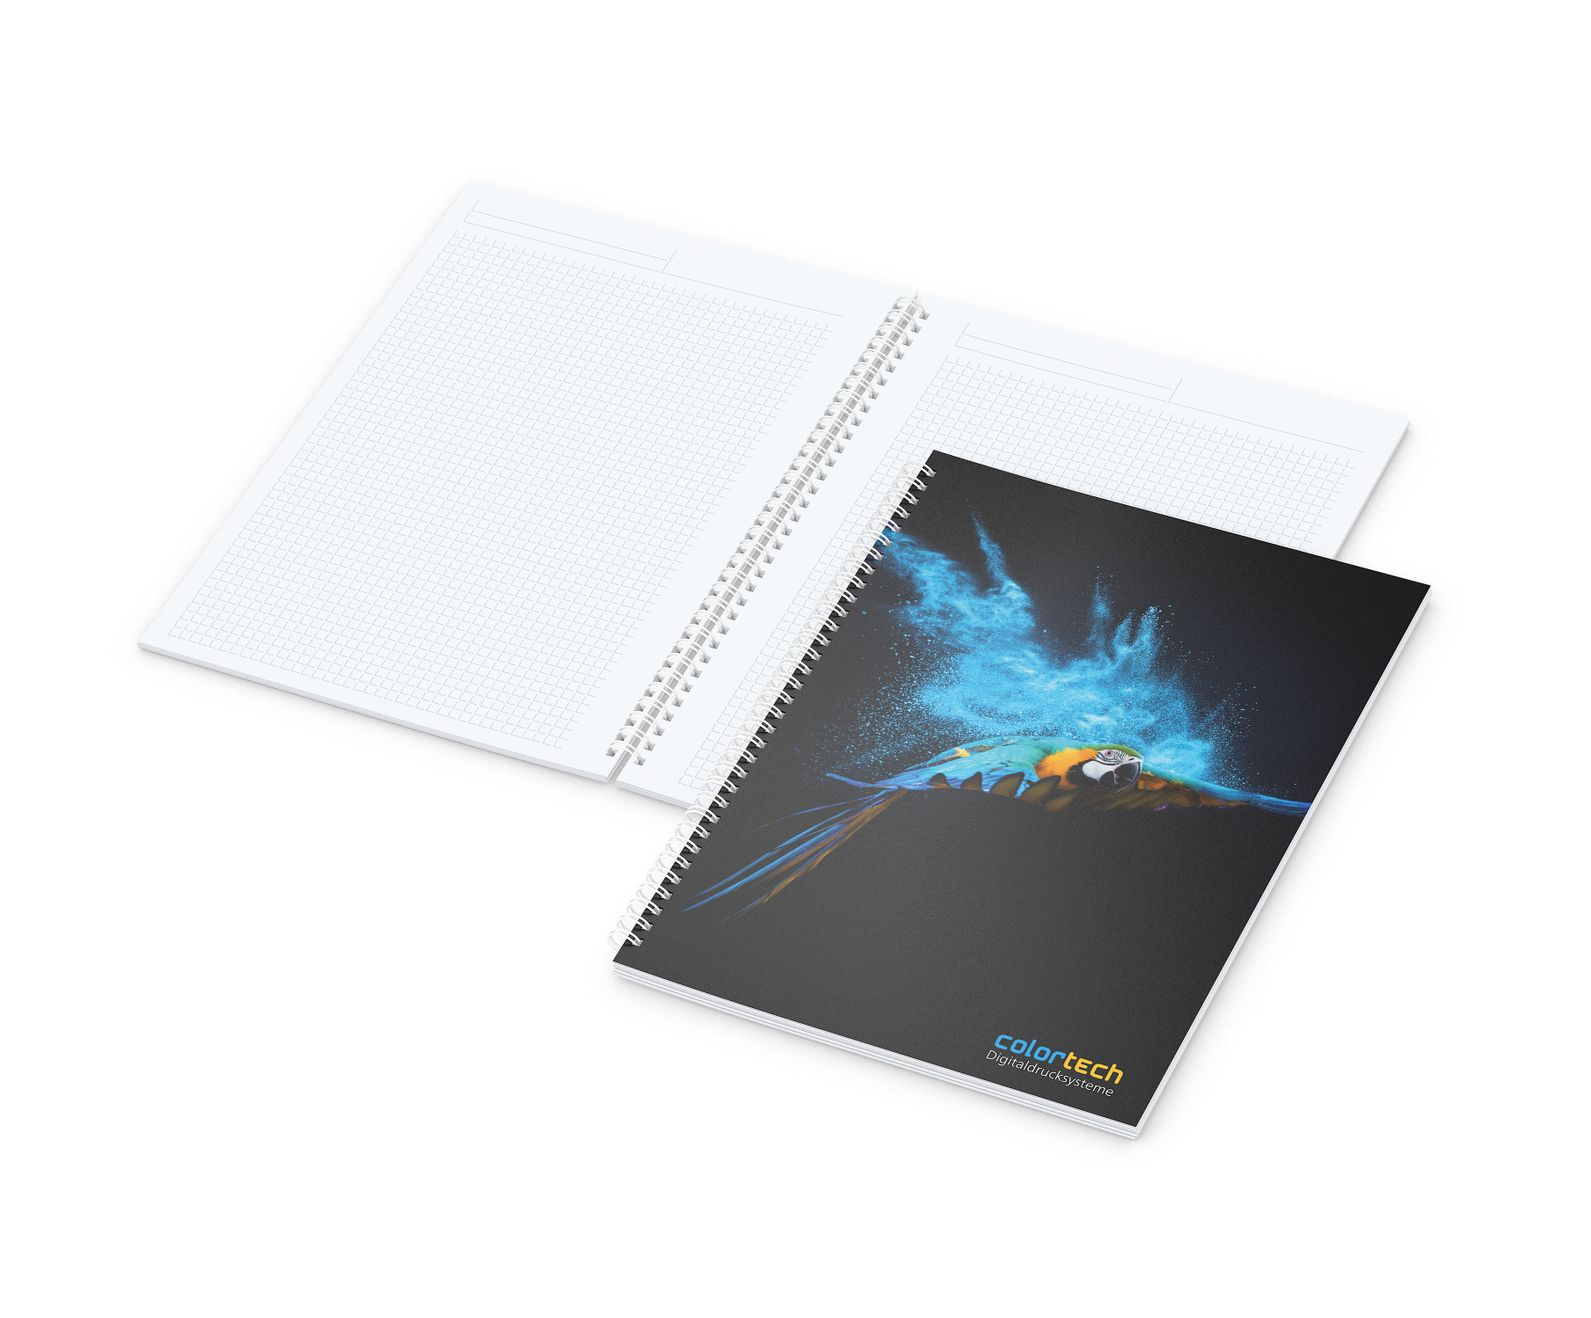 Notizbuch Meeting-Book A4 mit Einband Polyprop-Frost-Transparent